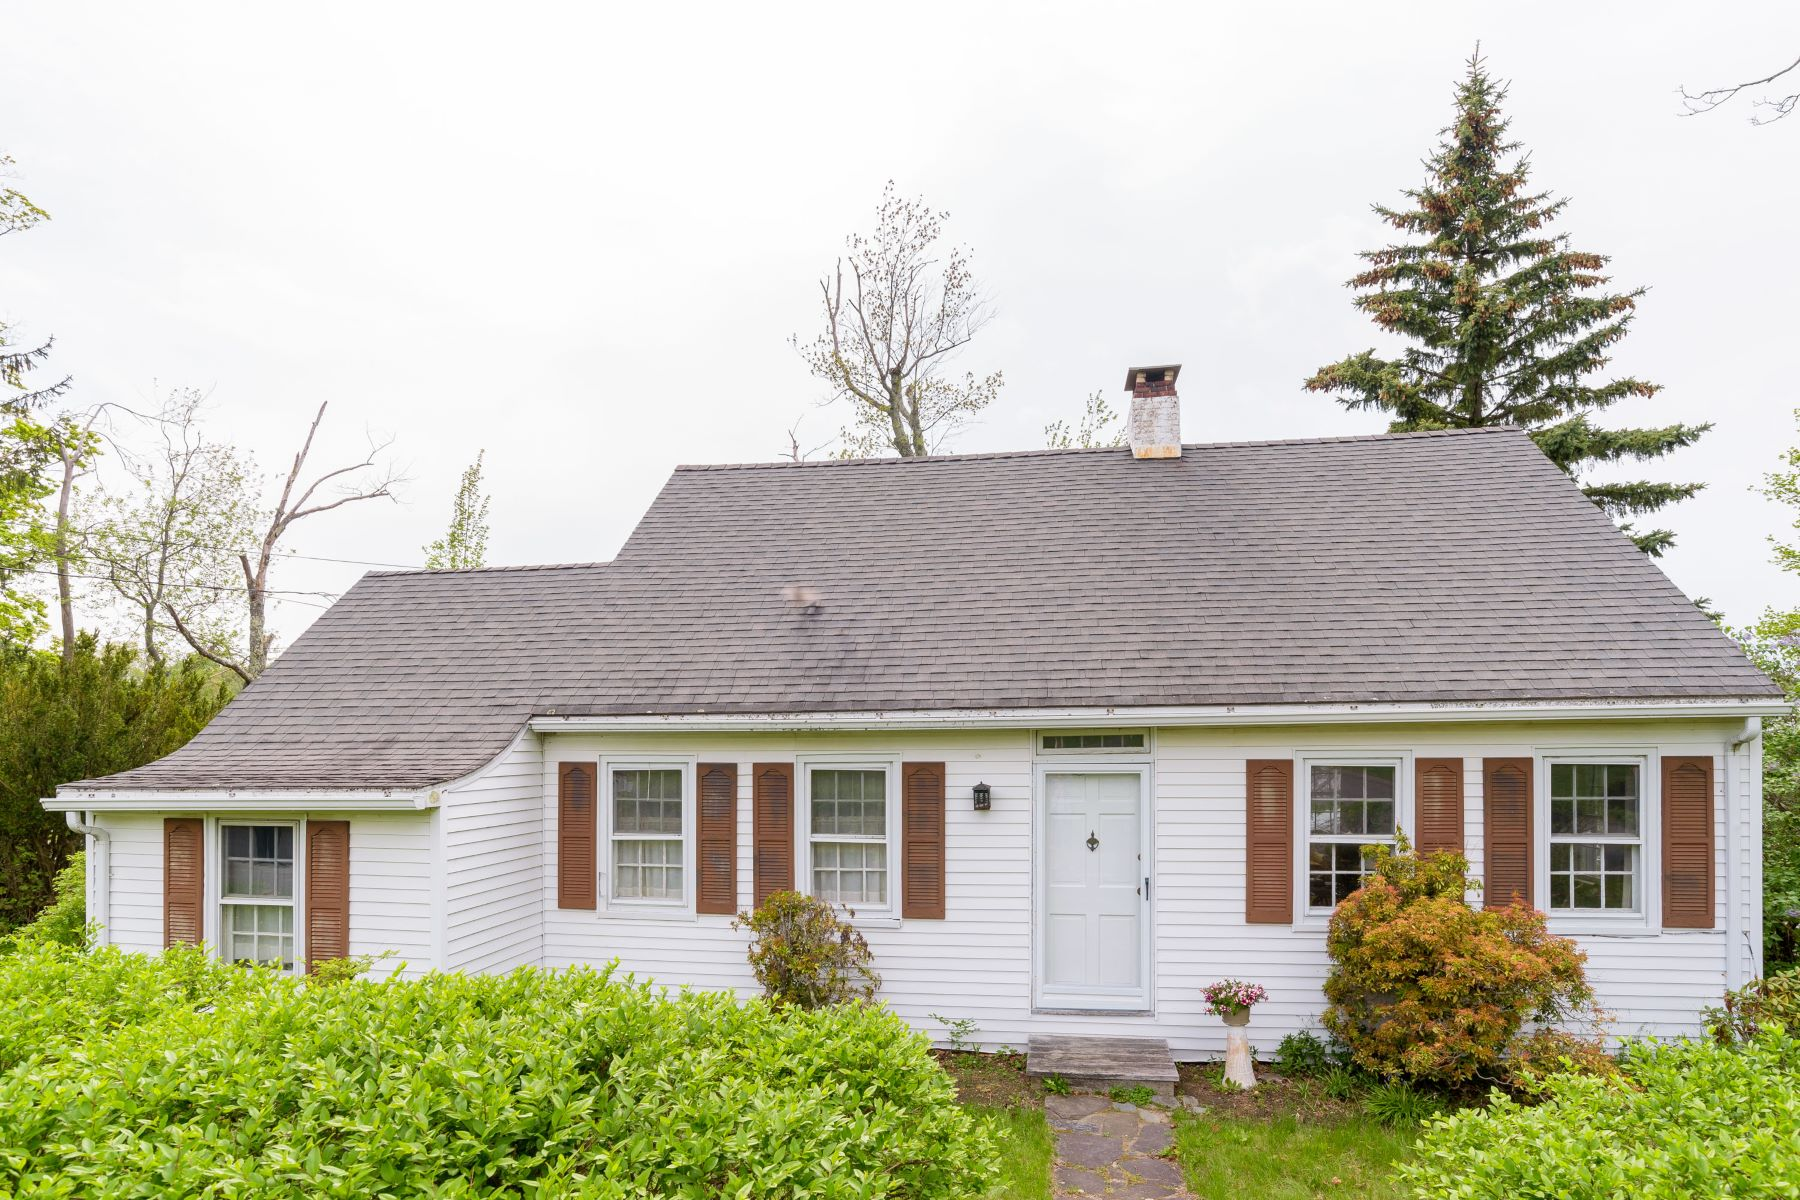 single family homes for Sale at Beautiful Ball Pond 31 Ball Pond Road East, New Fairfield, Connecticut 06812 United States